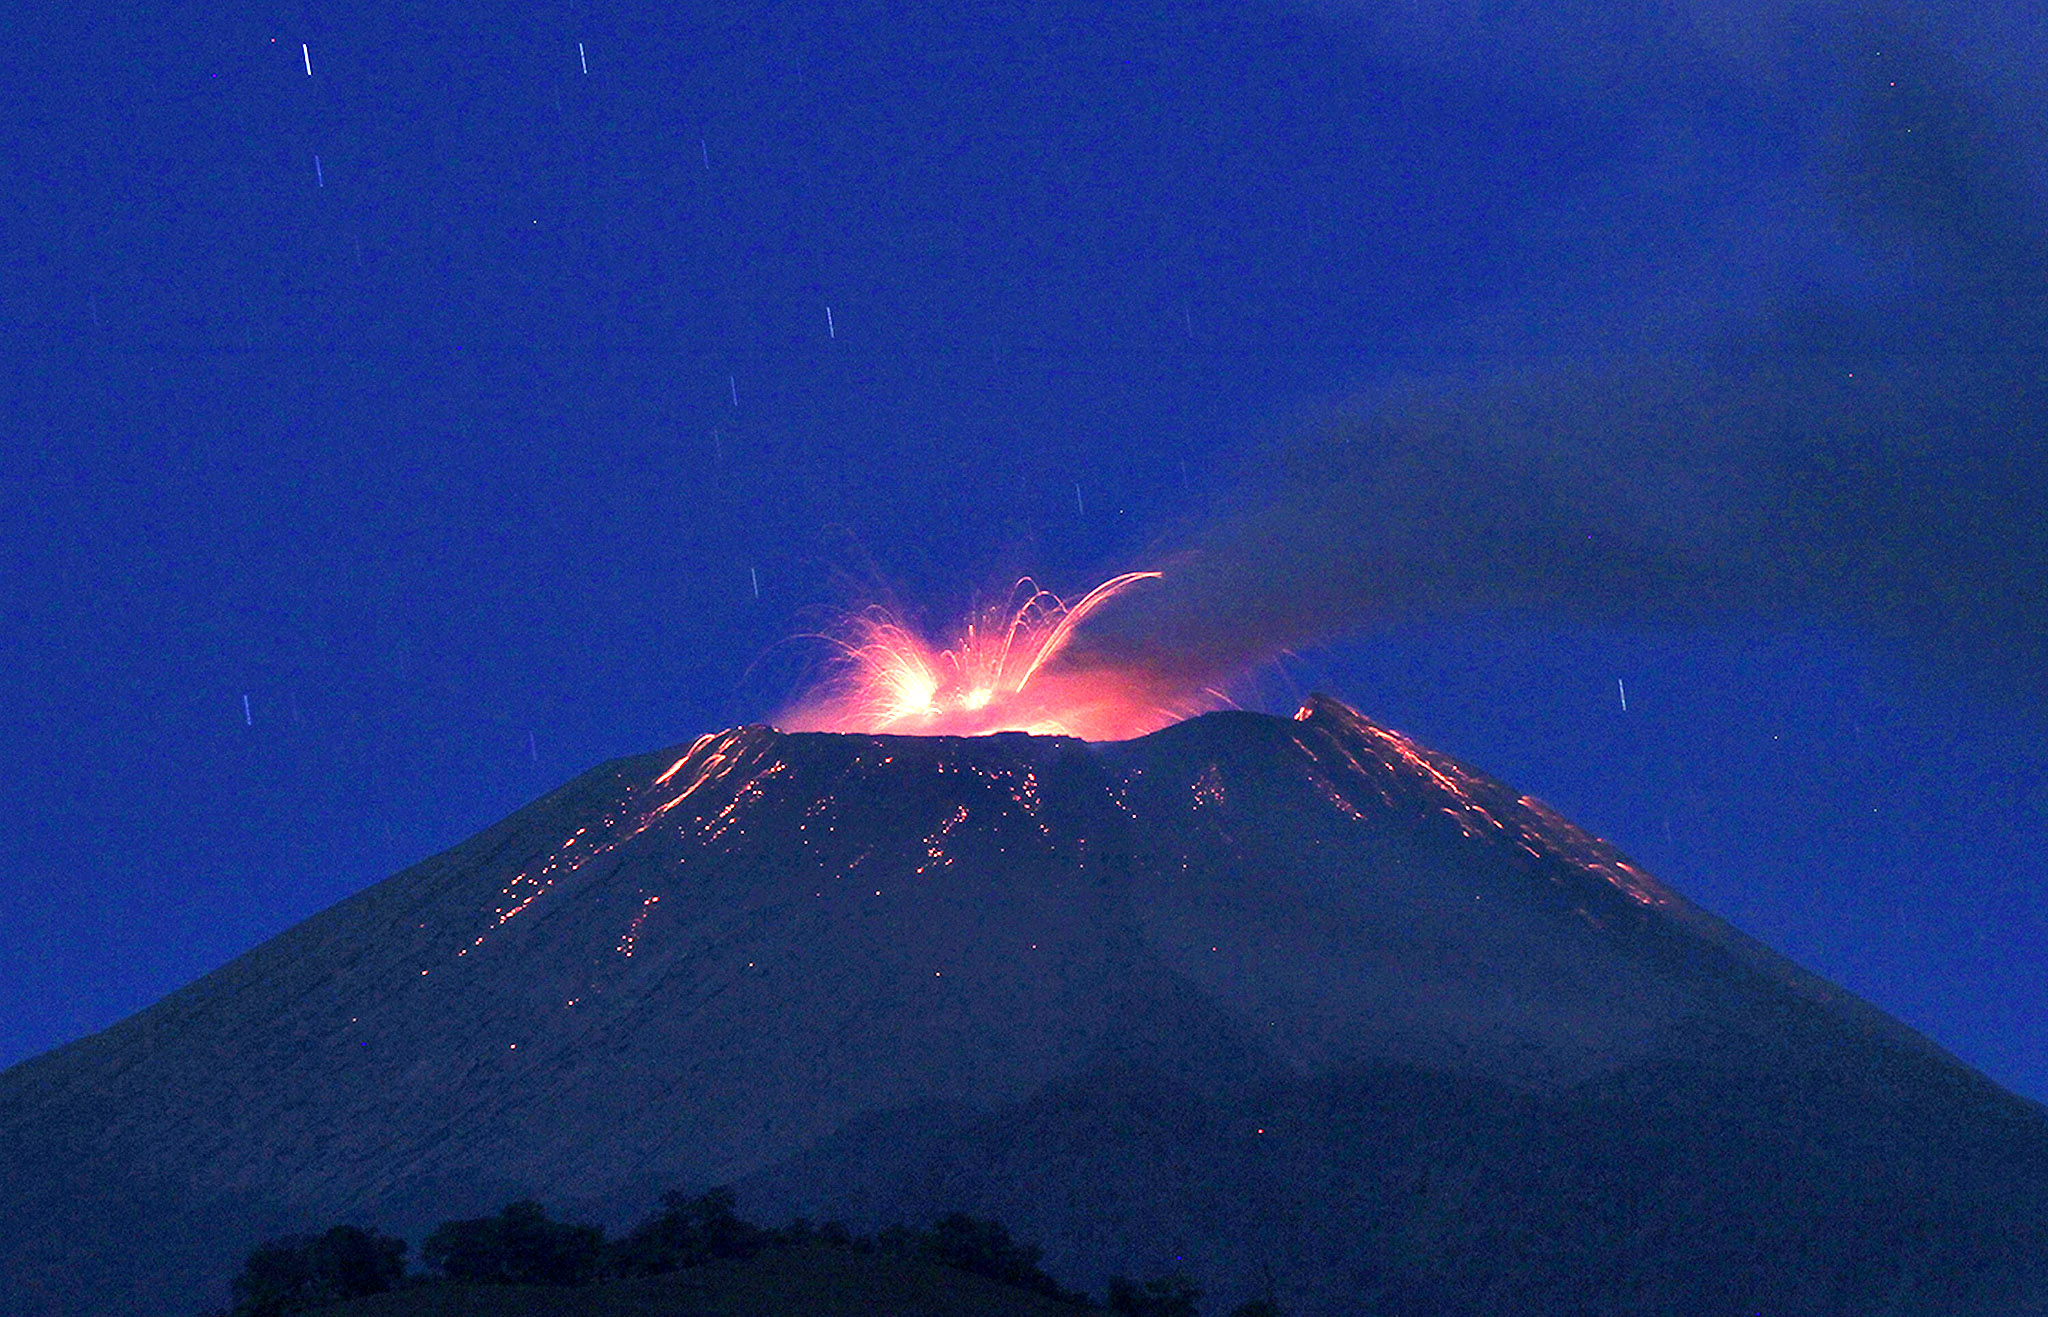 A long exposure photo shows smoke rising as lava flows from the crater of Mount Slamet volcano before dawn, as seen from Brebes town in Indonesia's Central Java province on September 12, 2014. Indonesian authorities have put the Mount Slamet volcano on the second-highest alert level after it erupted 38 times on September 11, spewing lava some 1500 metres (5,000 feet) into the air. Authorities warned residents to remain outside a four-kilometre radius of the volcano.